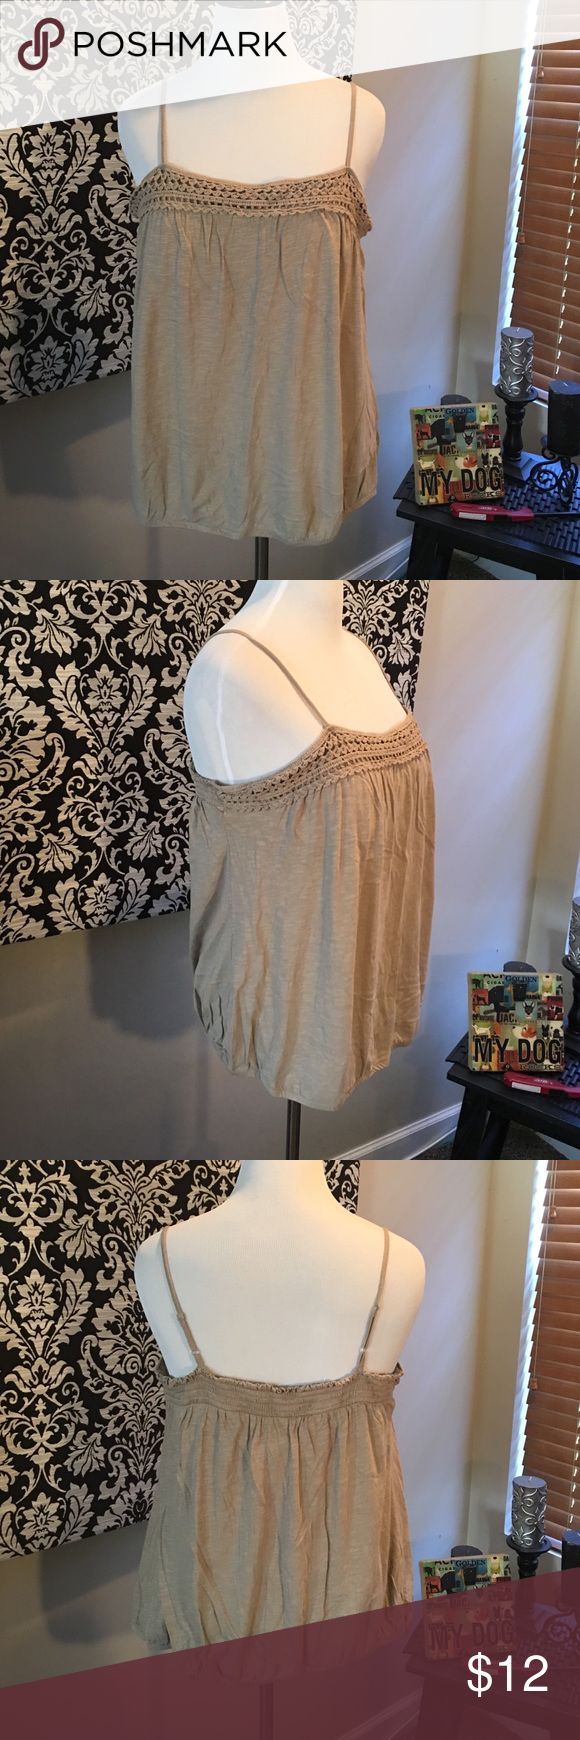 Old navy tan crochet spaghetti strap tank top Old navy tan crochet spaghetti strap tank top. Size XXL. Used. Good condition/wrinkled from storage. Adjustable straps. Elastic band around top and bottom. Cotton/modal. Old Navy Tops Tank Tops